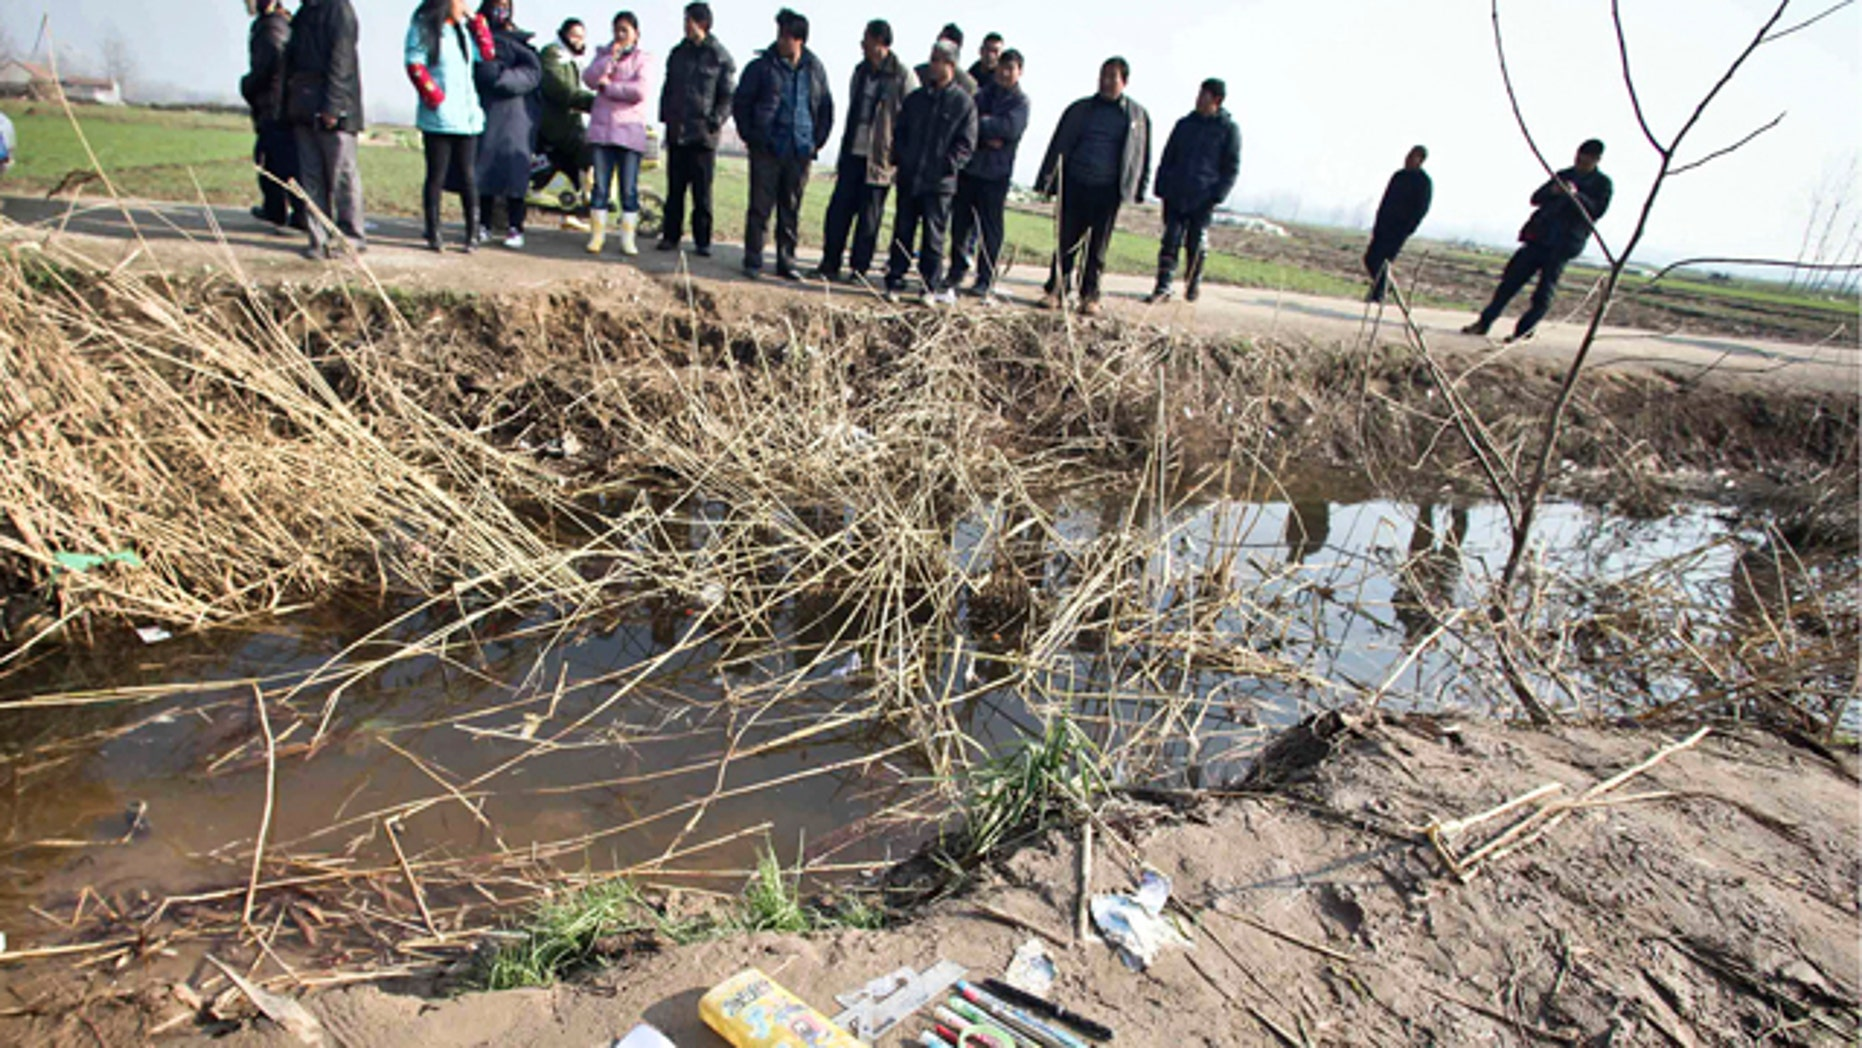 Dec. 13: People look at the accident site of a school bus which veered into a water-filled ditch, in Feng county in east China's Jiangsu province.